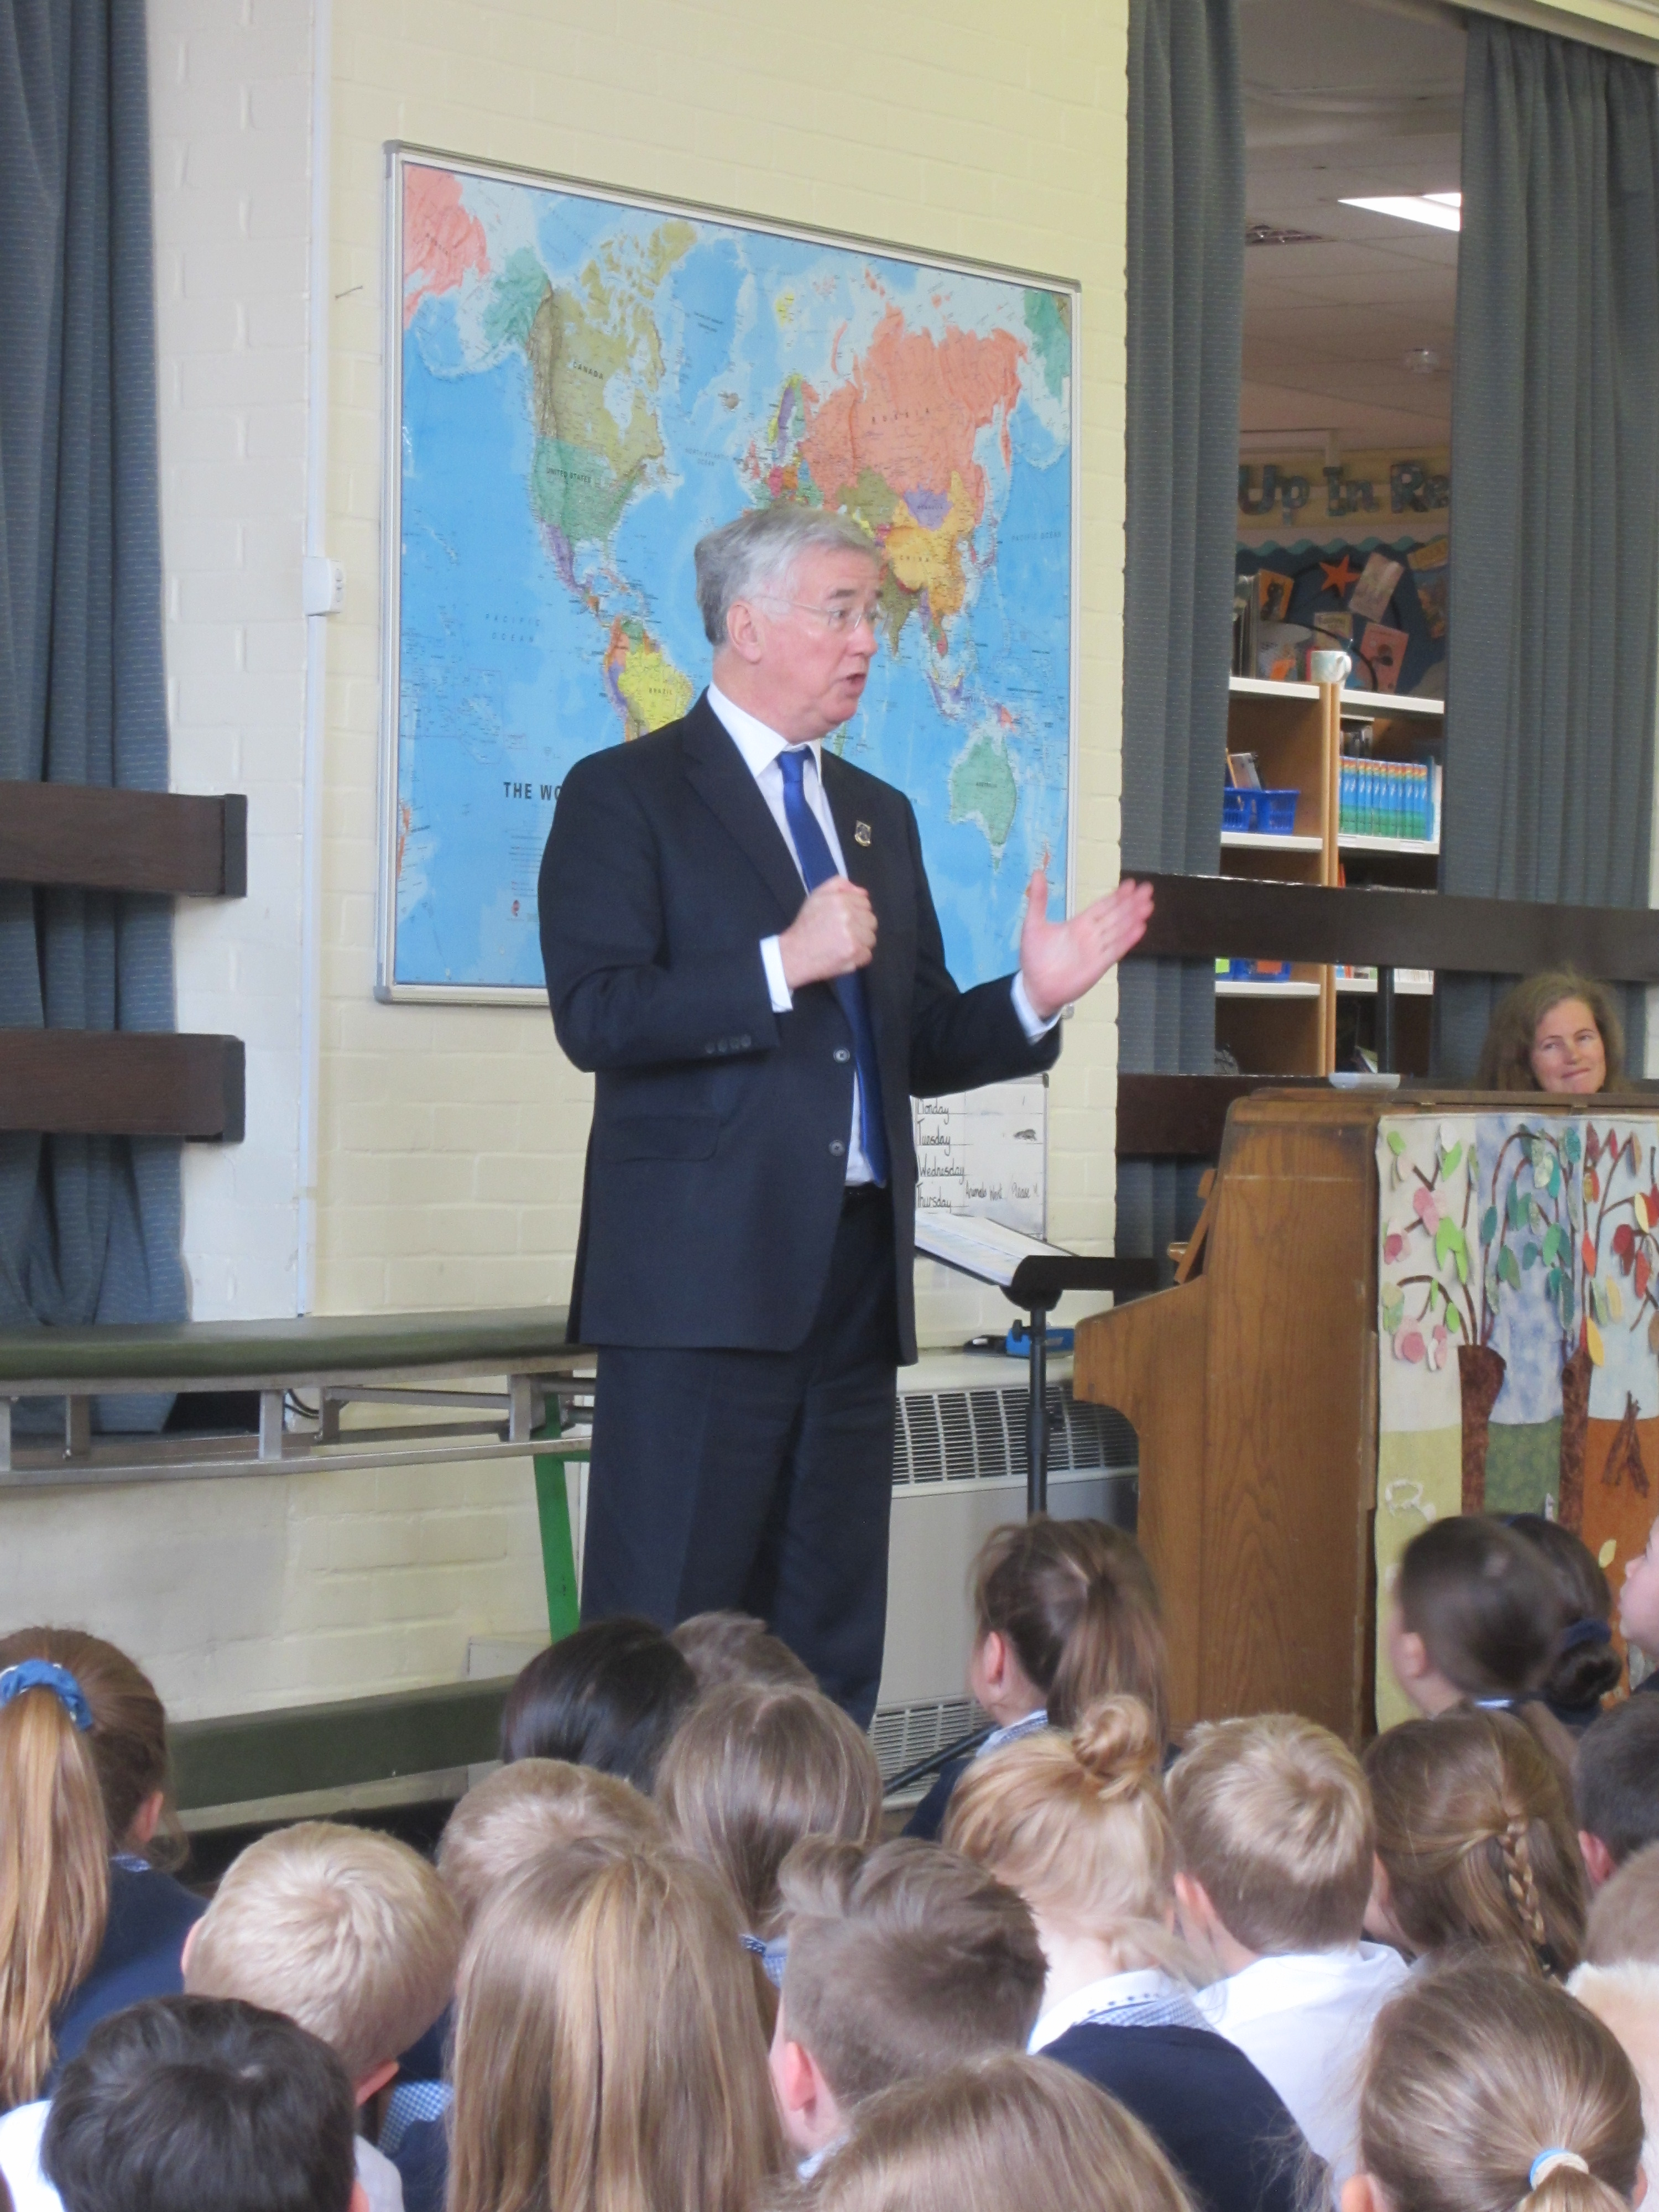 Michael speaking to pupils at Amherst School.